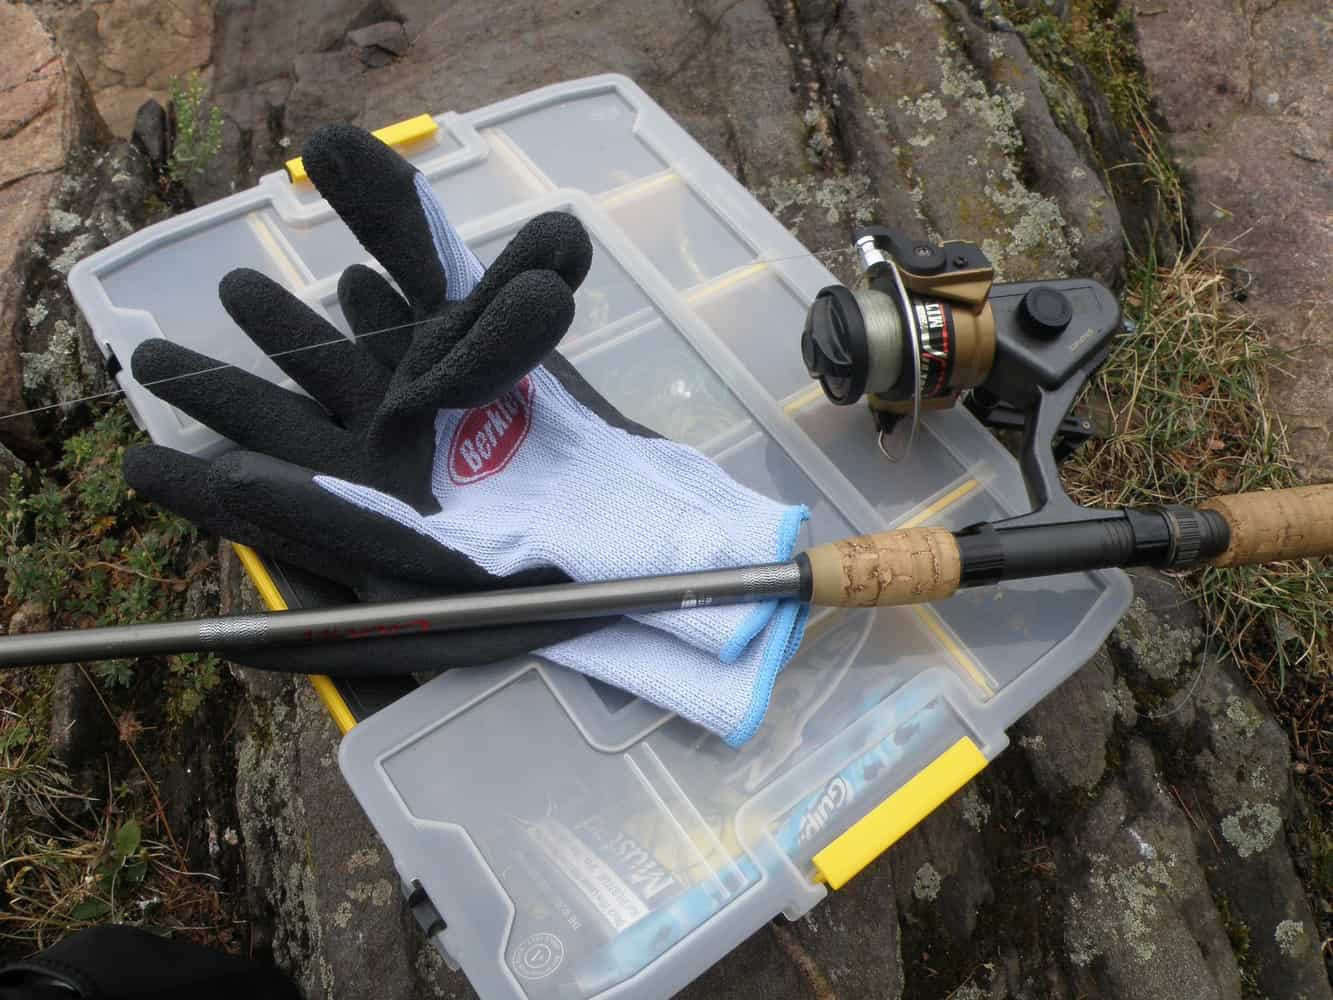 Fishing Gloves For a Great Day